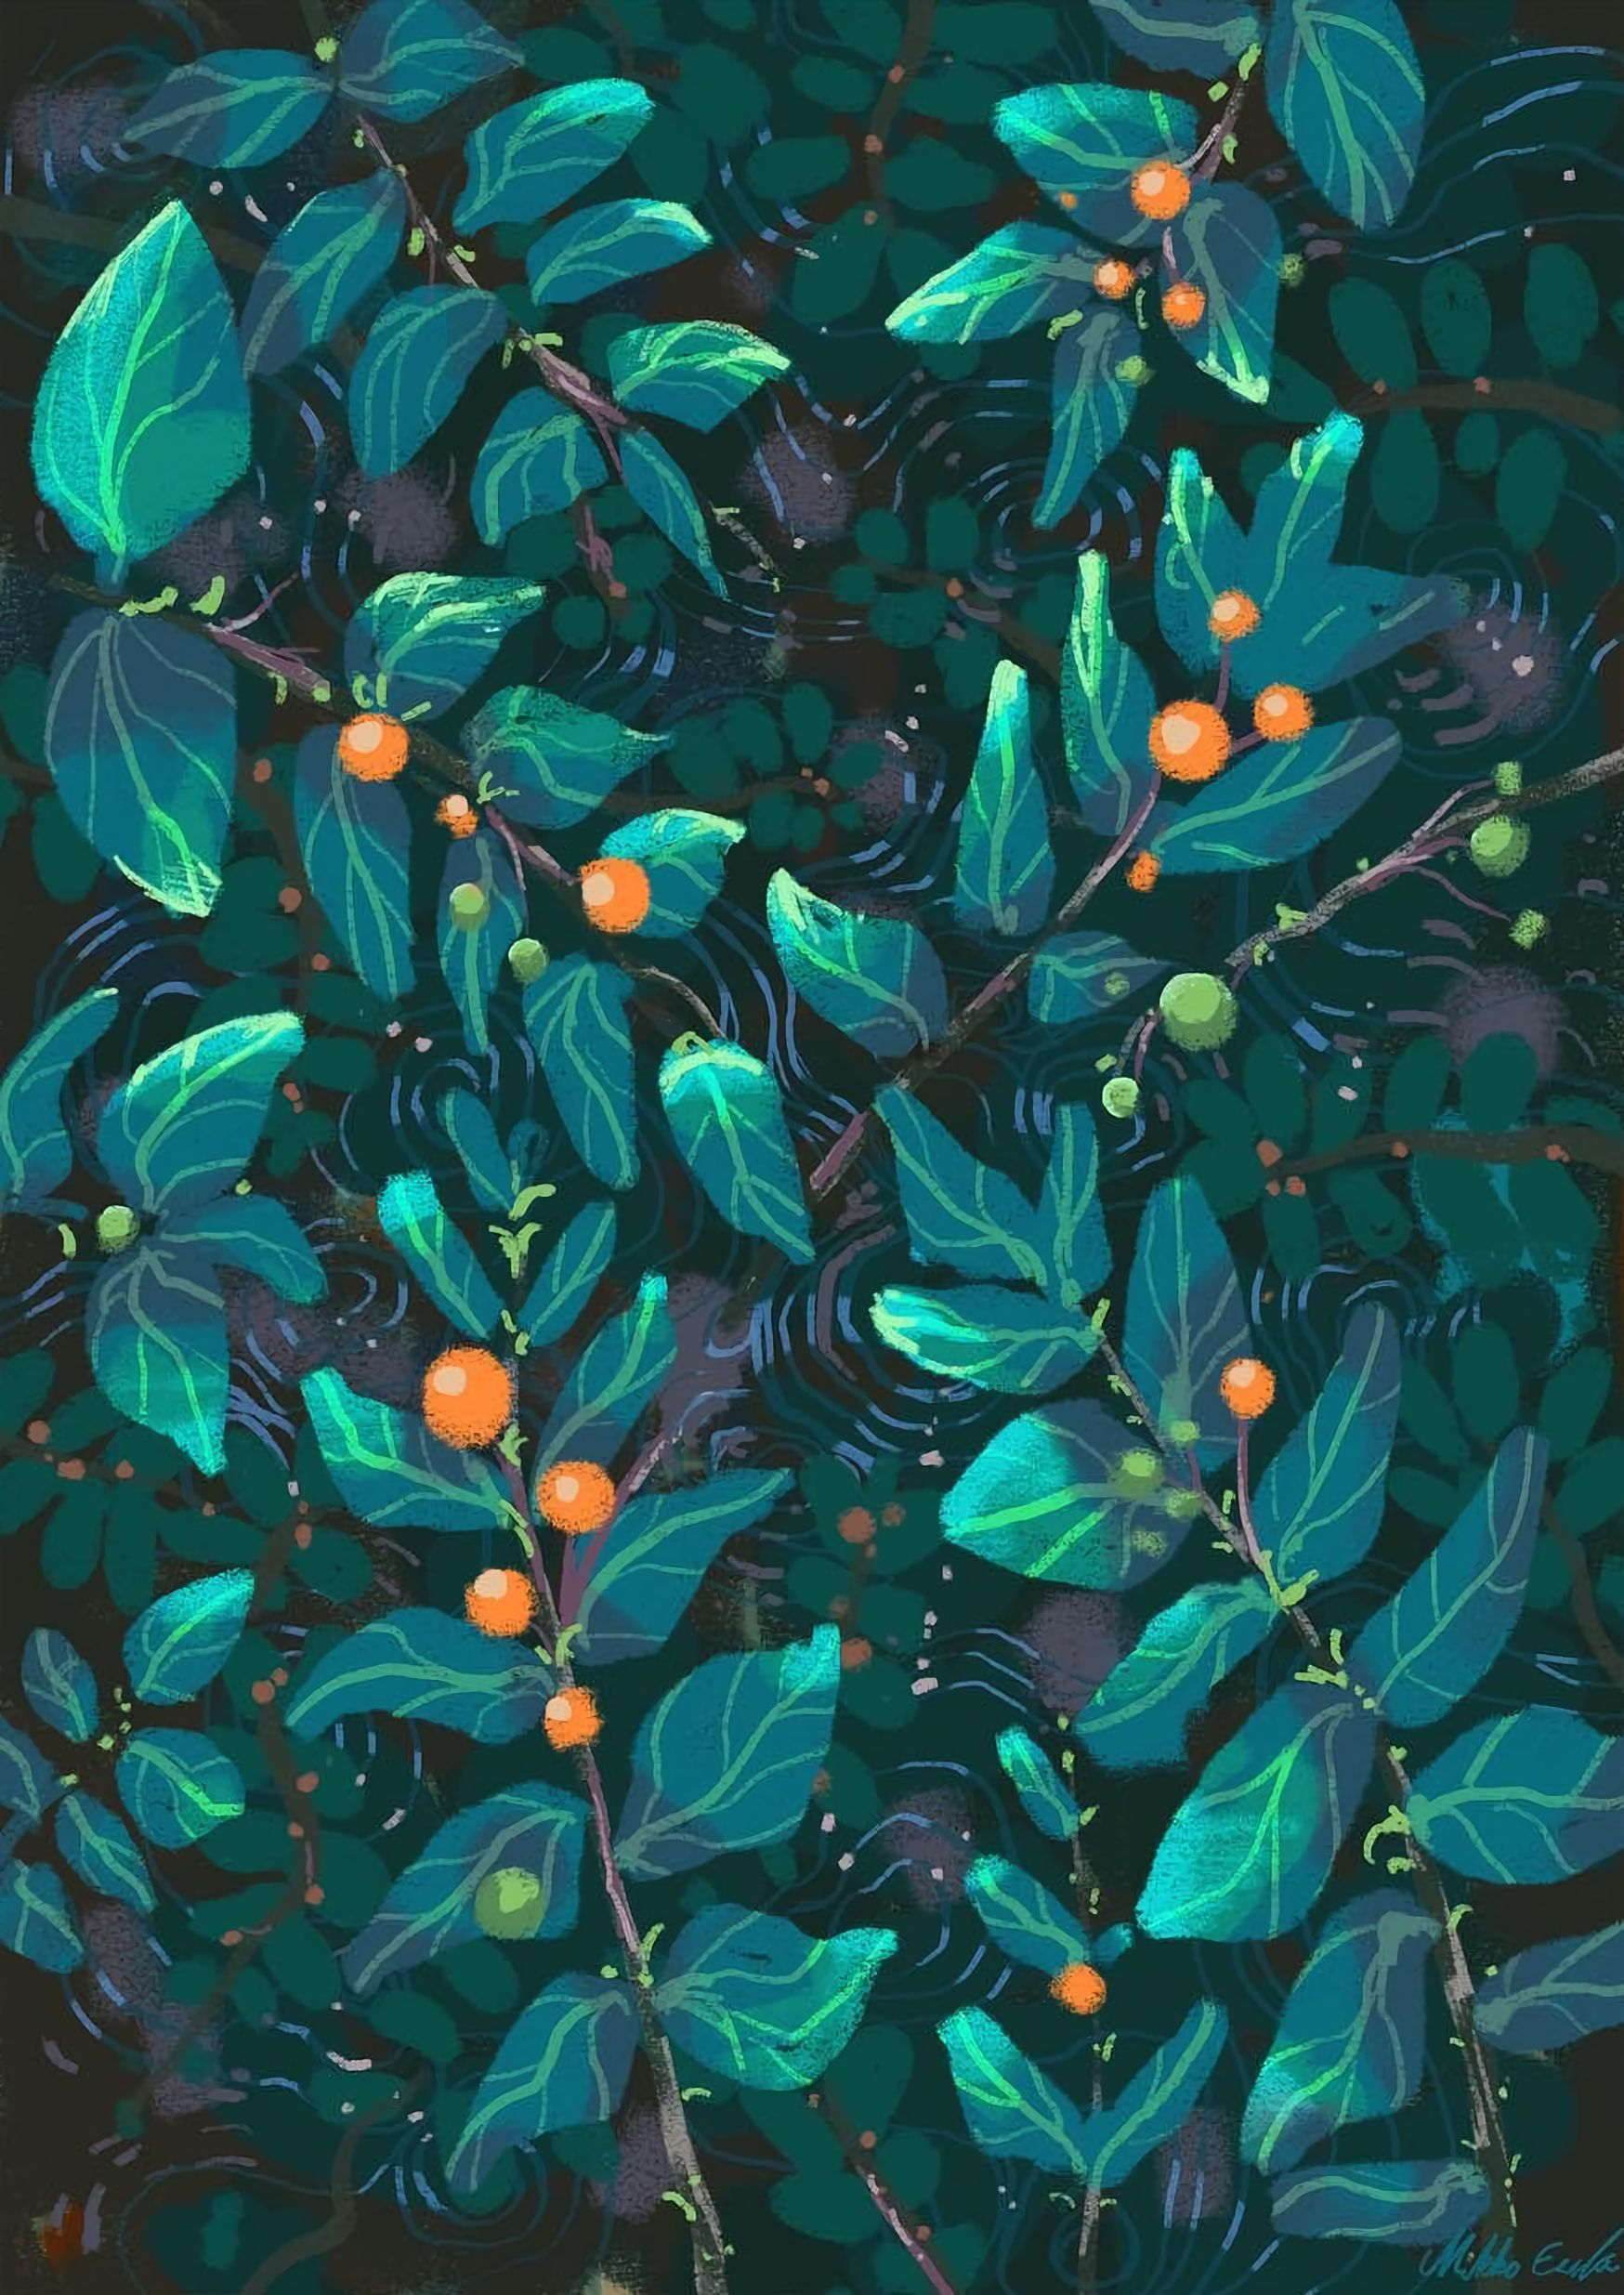 127678 download wallpaper Art, Leaves, Berries, Patterns, Texture, Textures, Paint screensavers and pictures for free